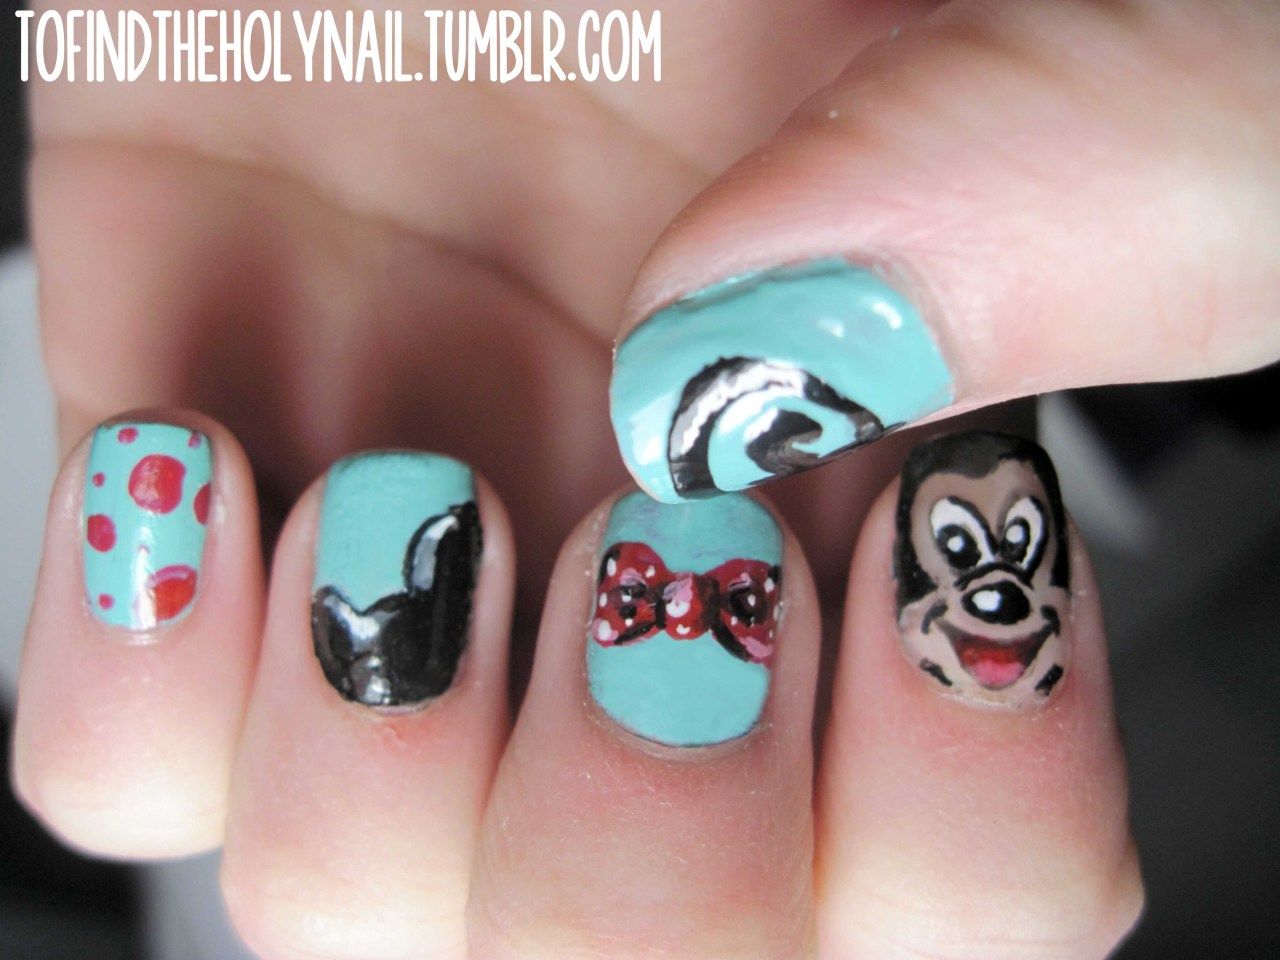 Mickey mouse nails! These were lots of fun to paint.I used For Audrey, Scarlet, and Nude (all by China Glaze), Blanc (by Essie), and Black Out (by Sally Hansen).